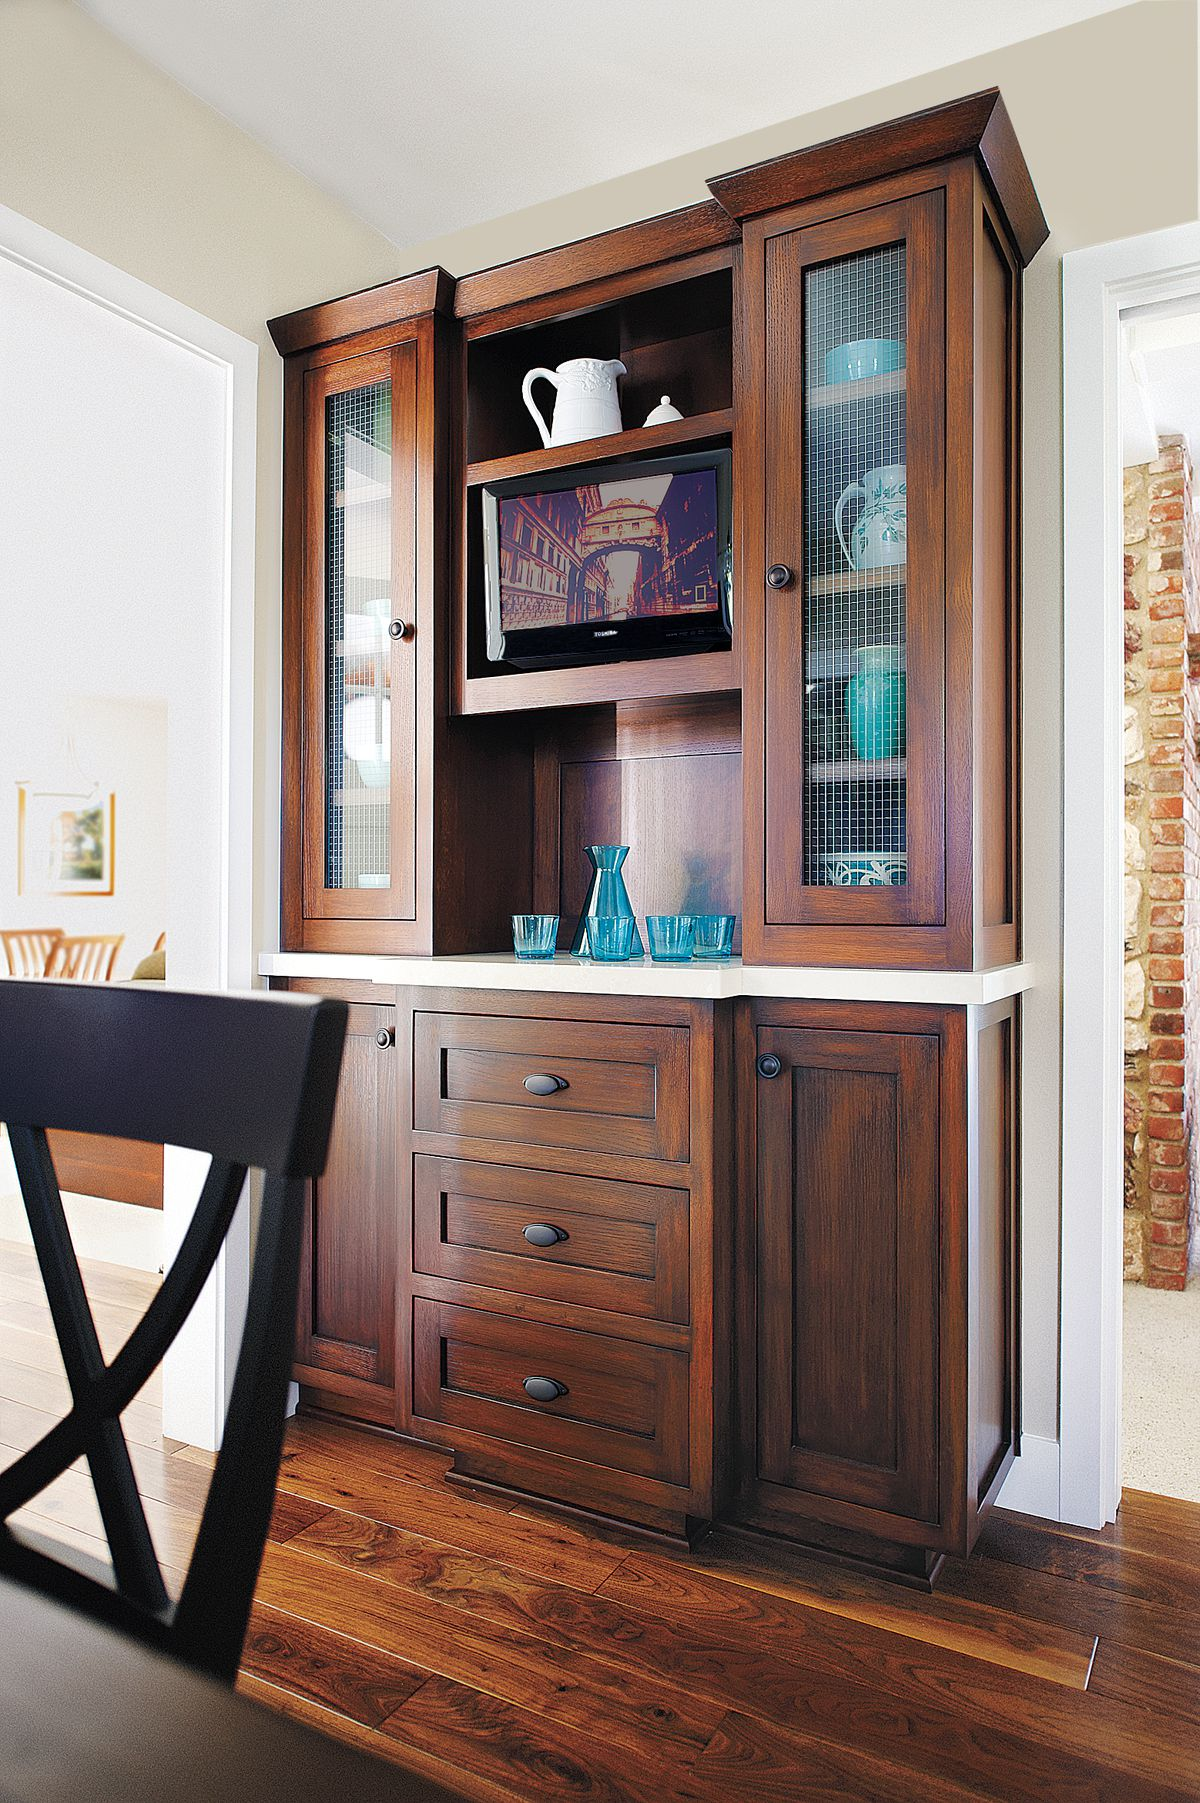 Wooden dining room cabinet with a quartz countertop built in.